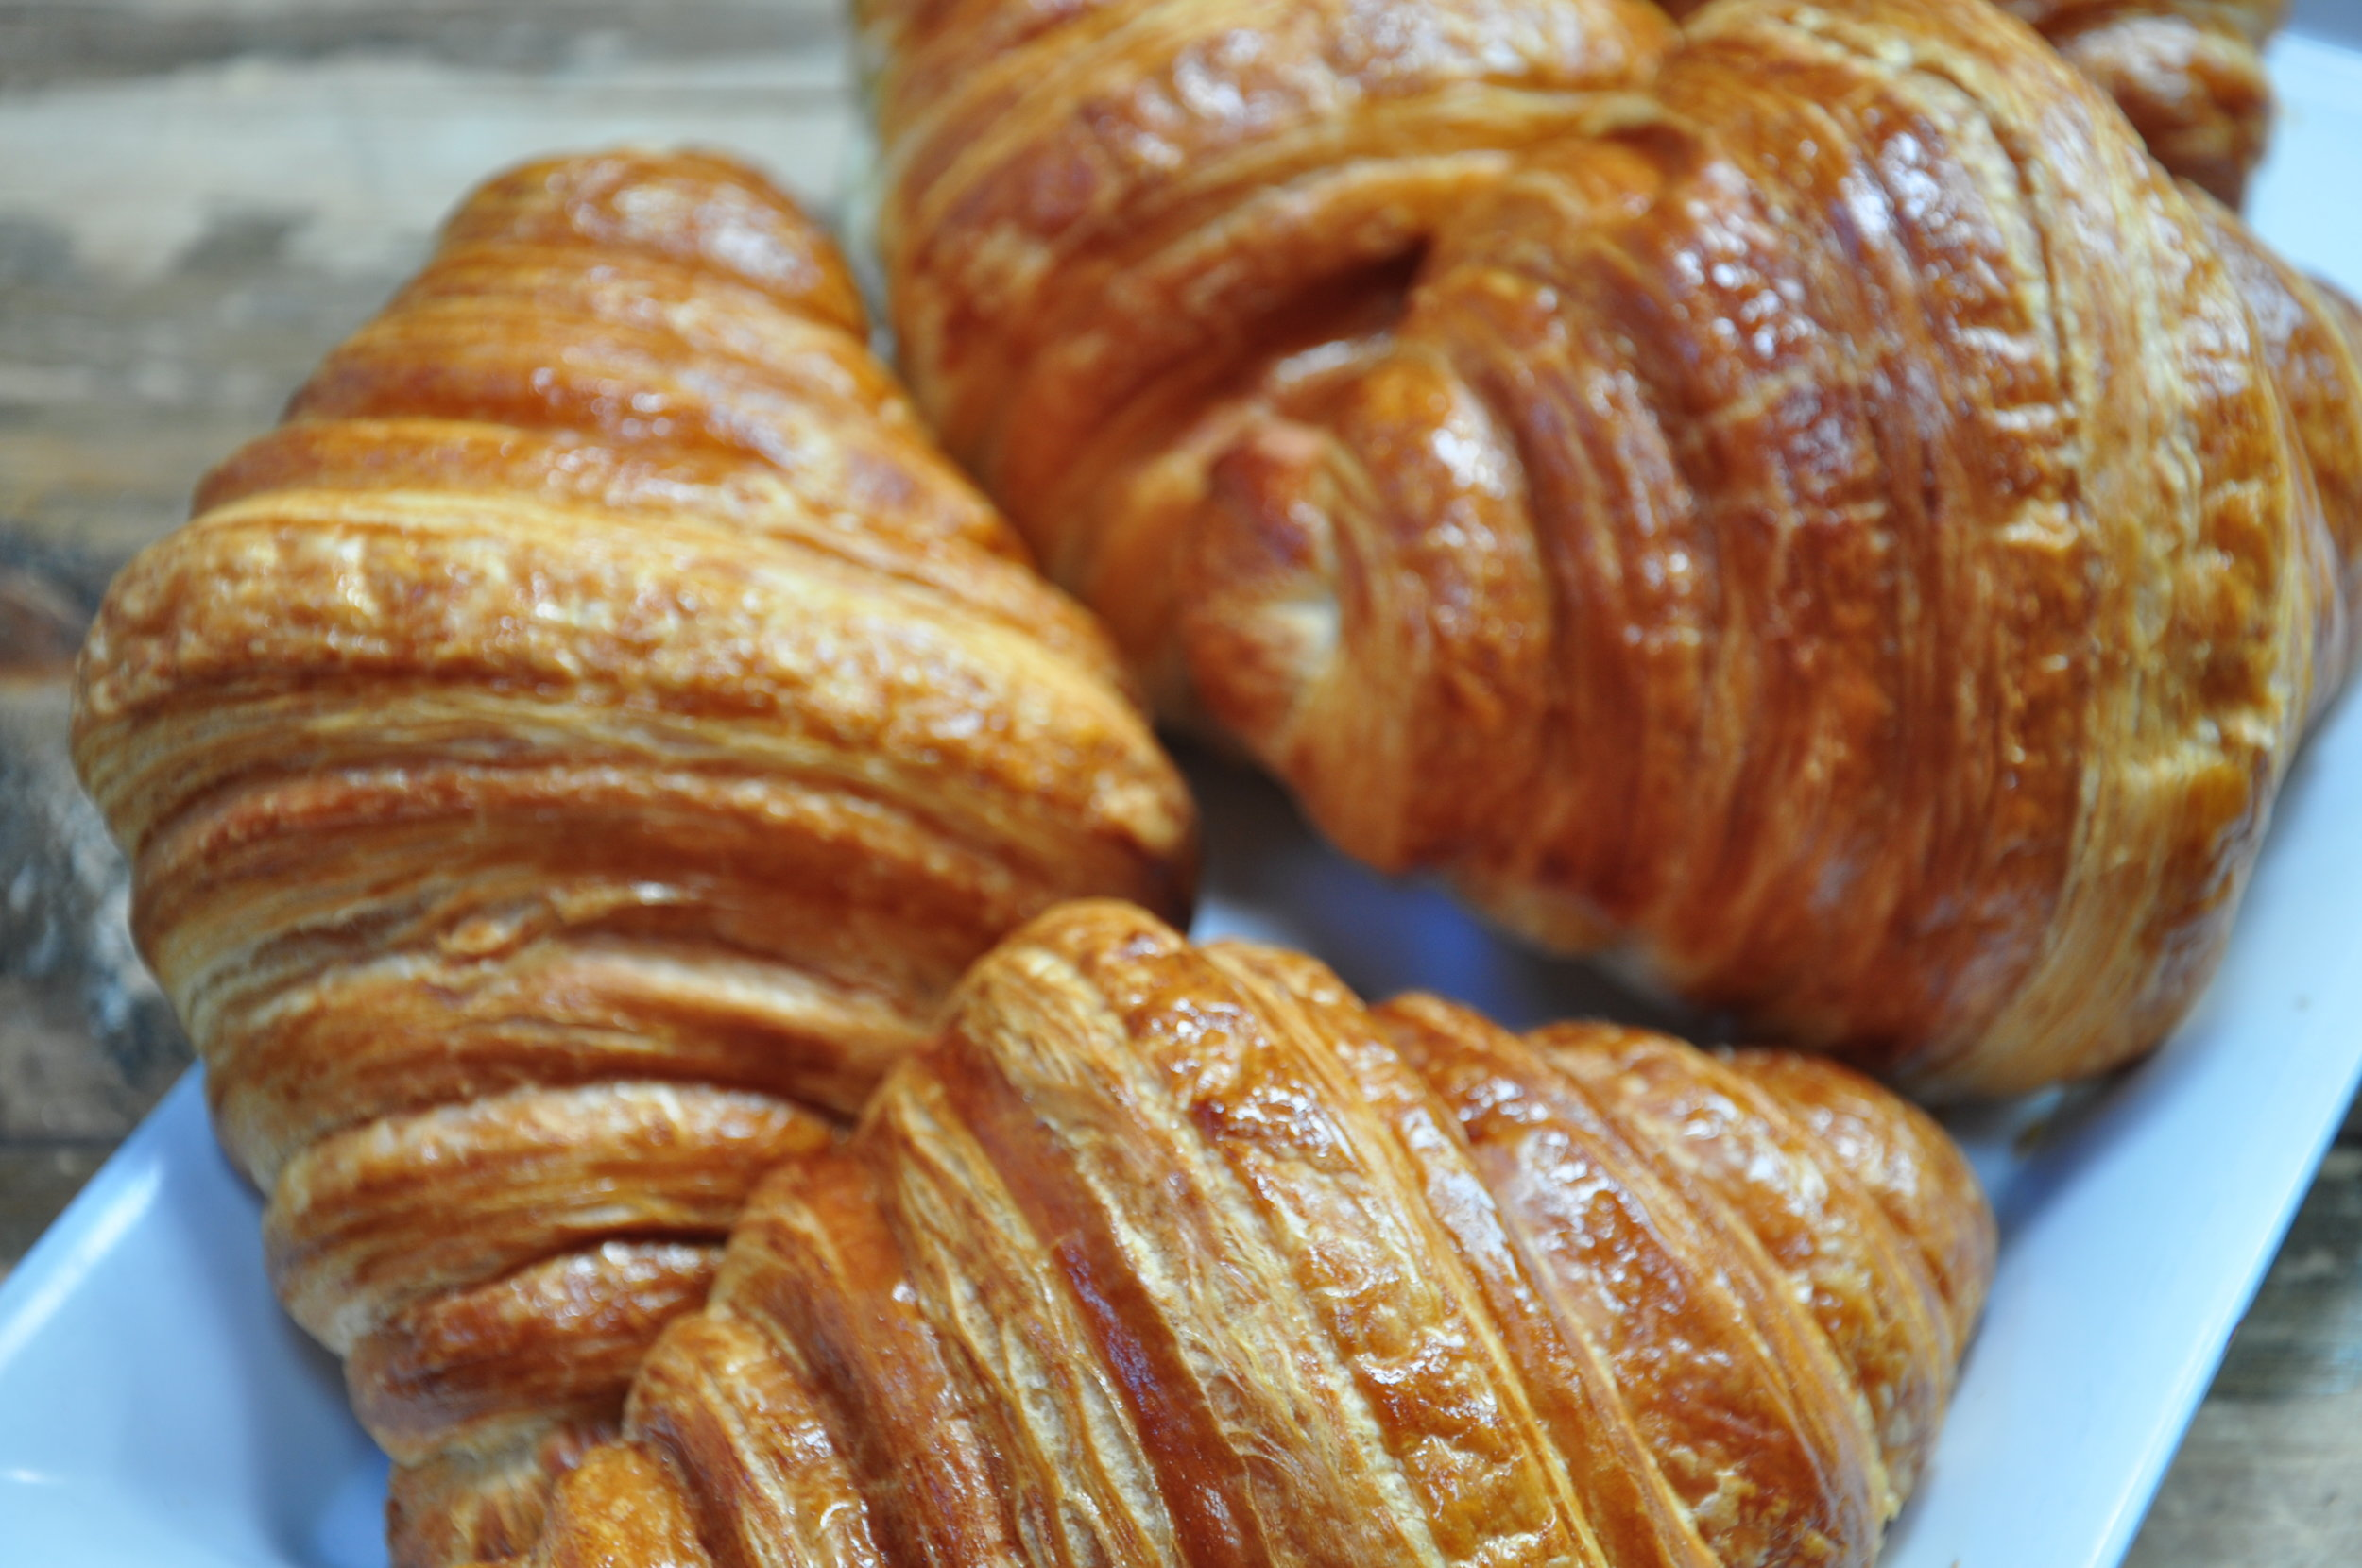 We Serve Fresh pastries - Baked Daily